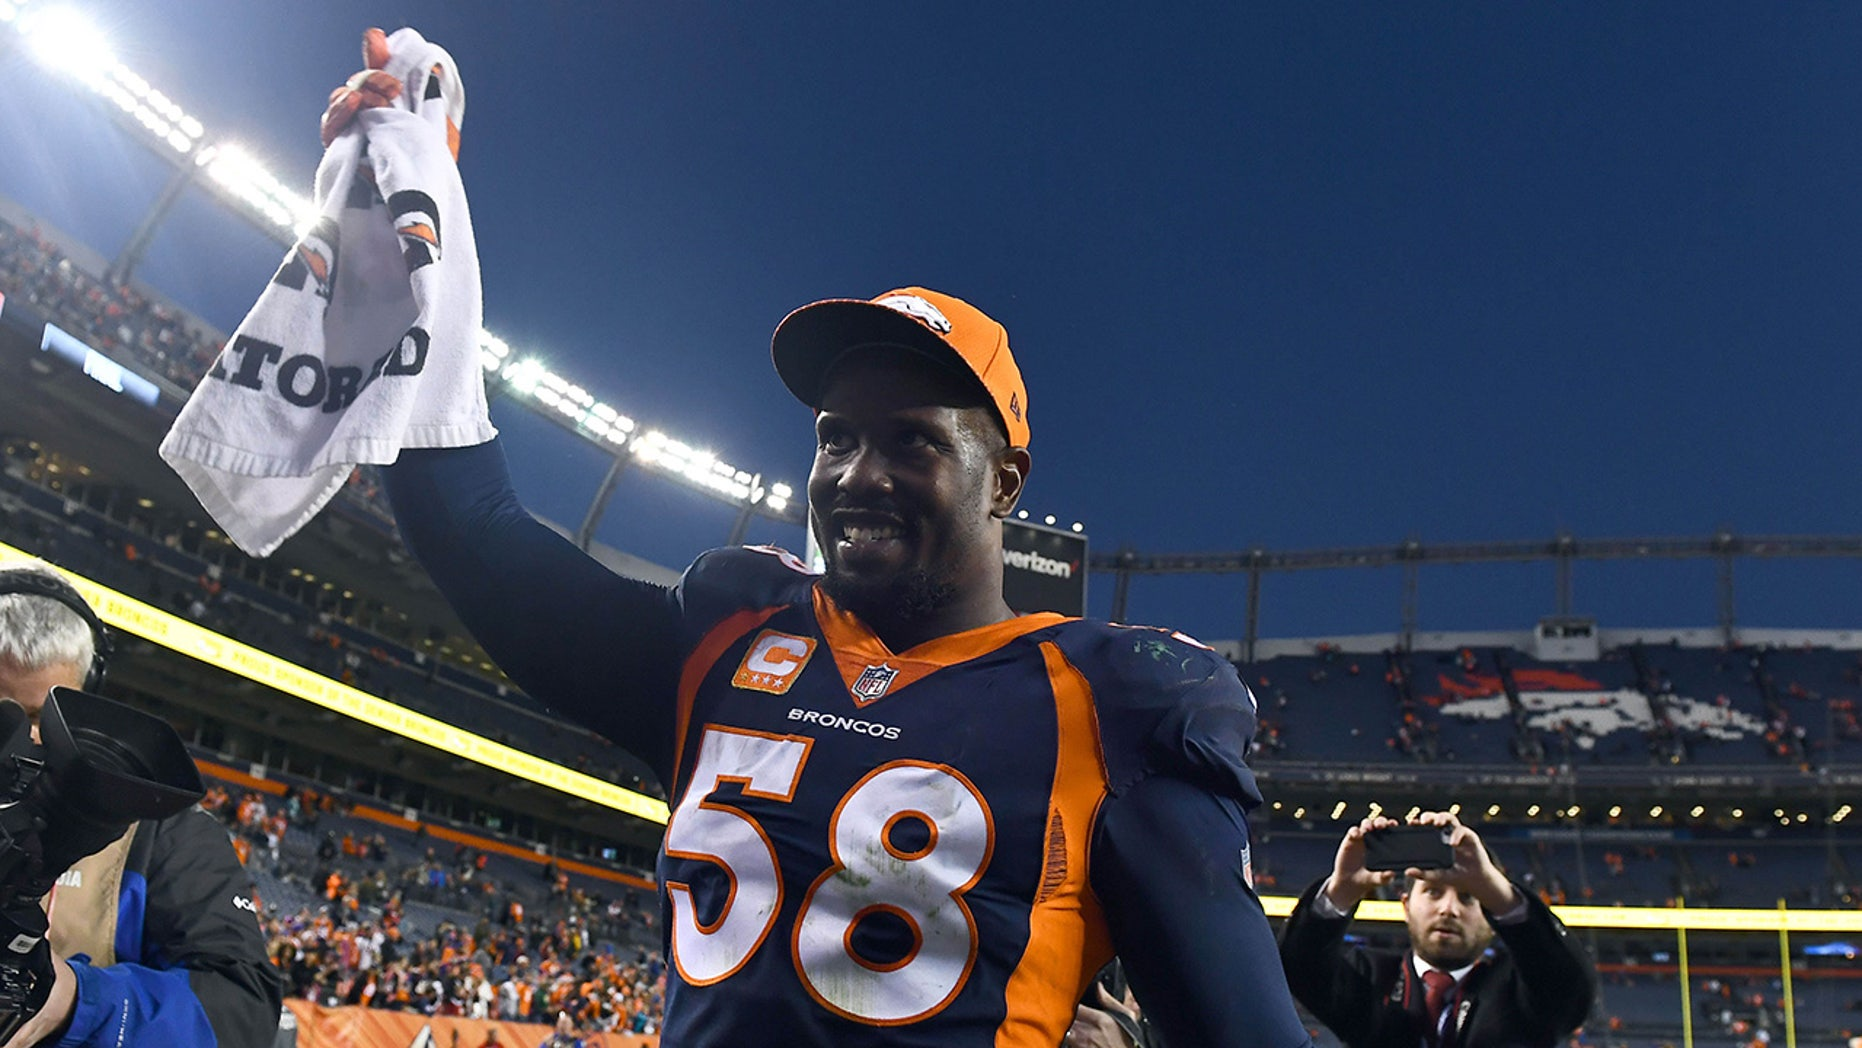 Broncos star Von Miller was not charged after being investigated for his handling of a hammerhead shark.